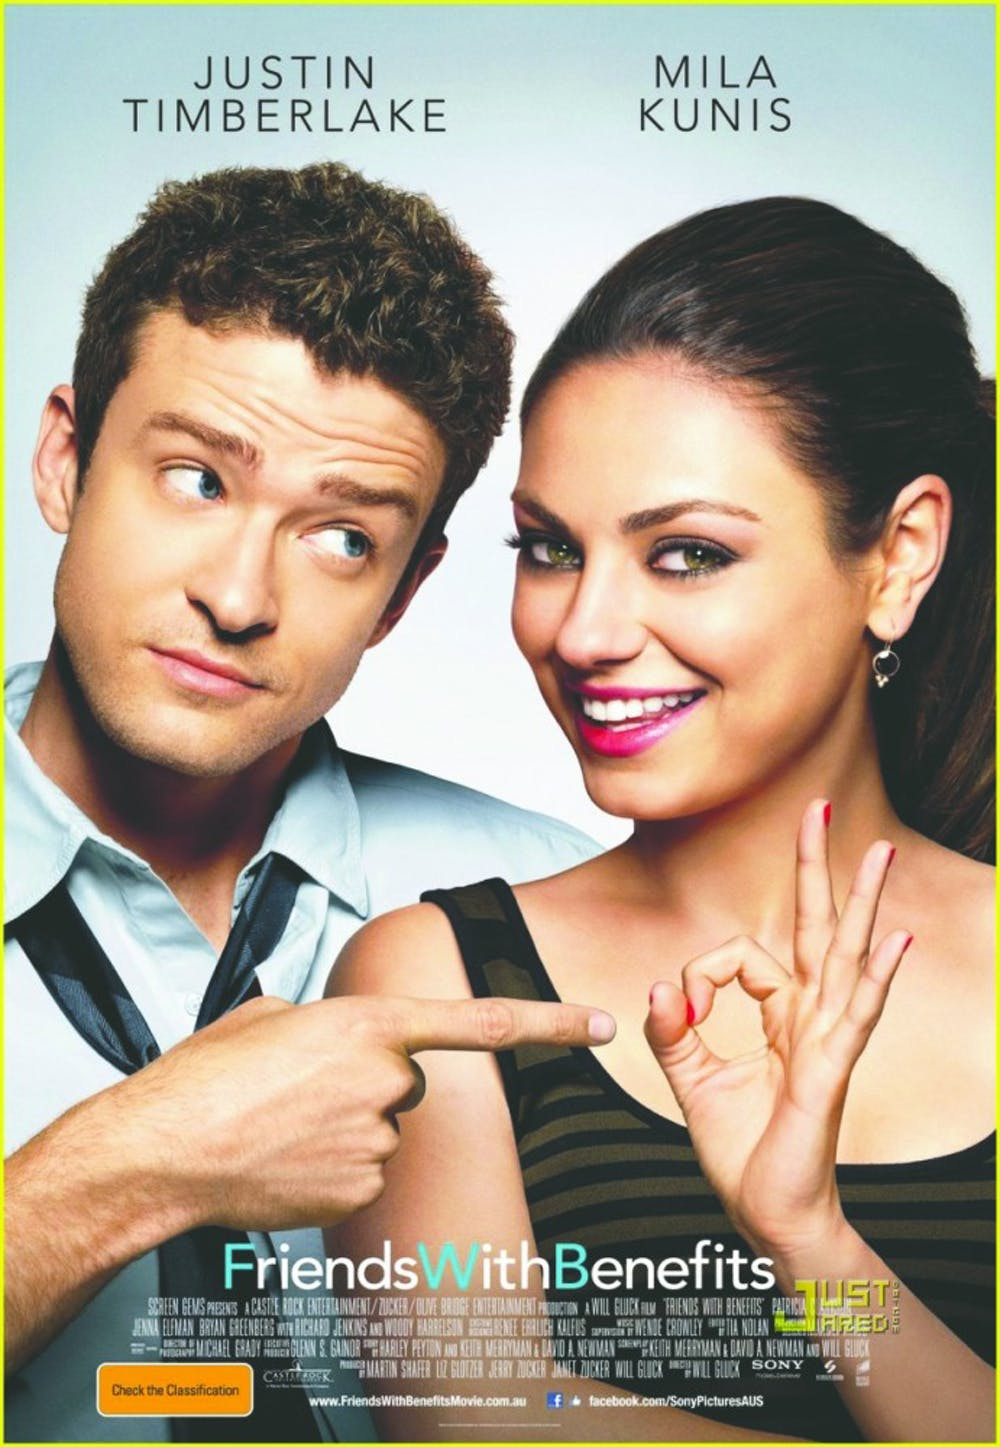 justin-timberlake-mila-kunis-friends-with-benefits-poster-01